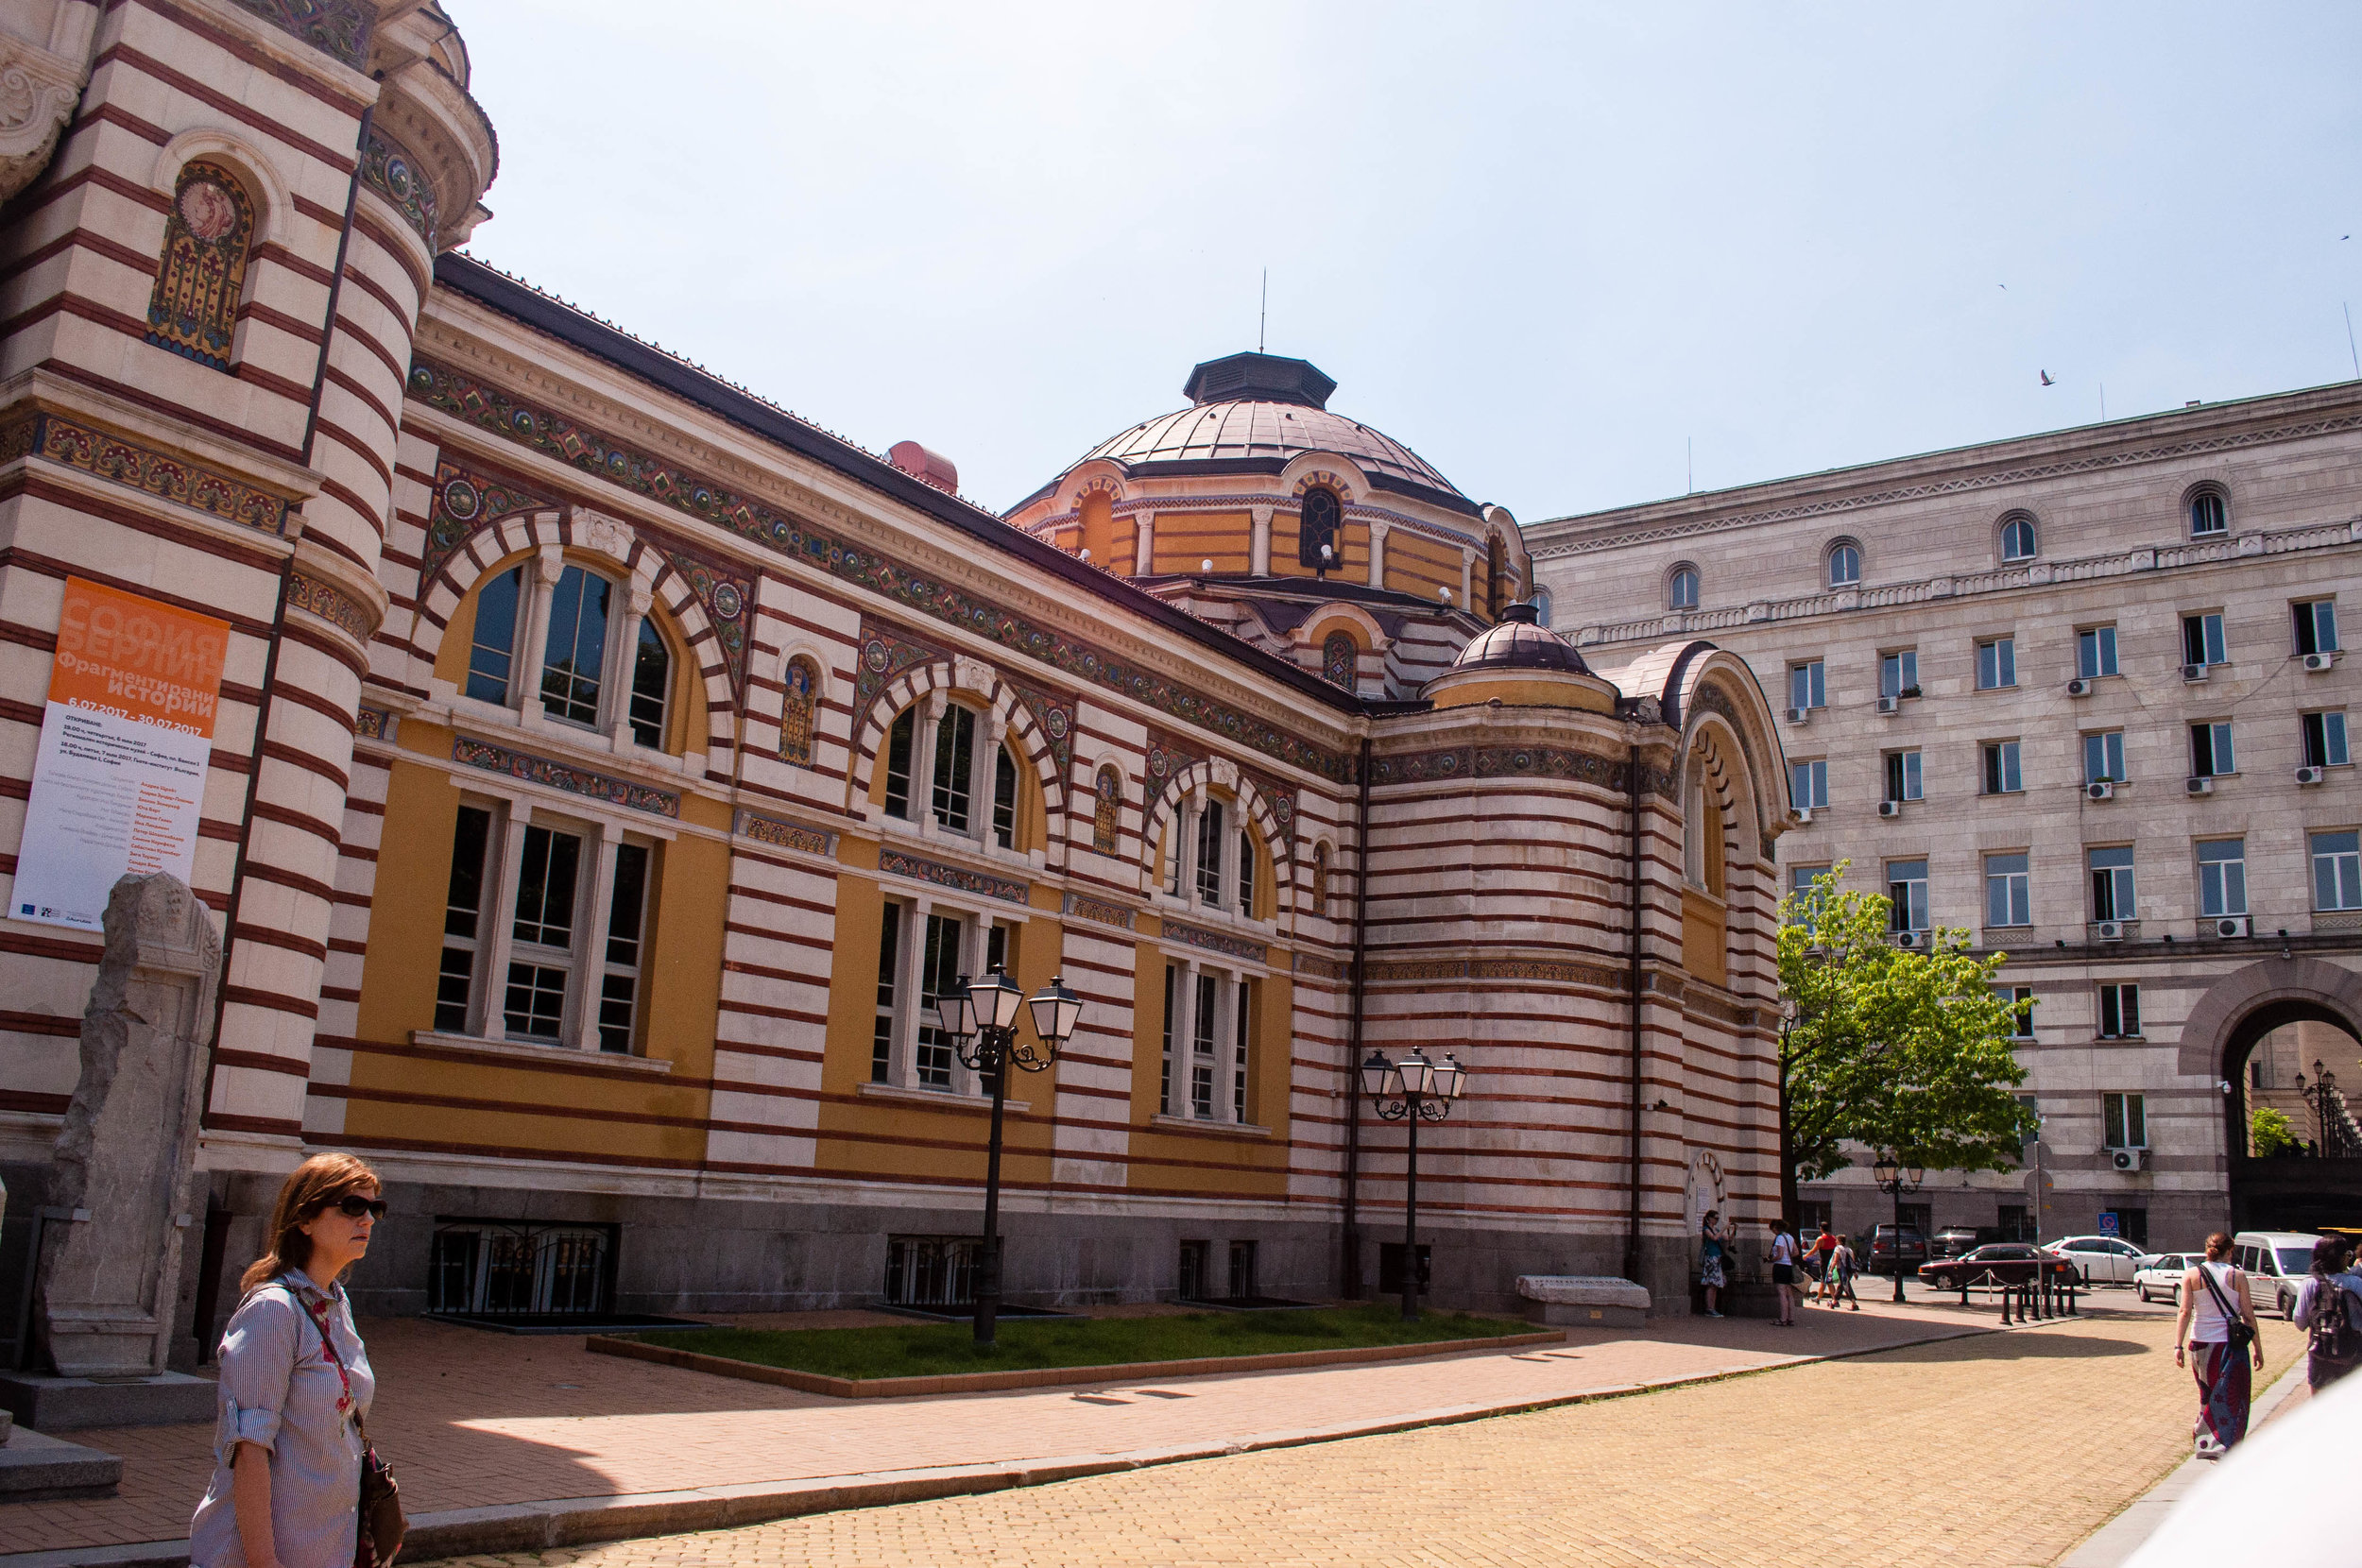 Serdika square buildings, this is one of the must-see in a 2-day itinerary in Sofia (Bulgaria)